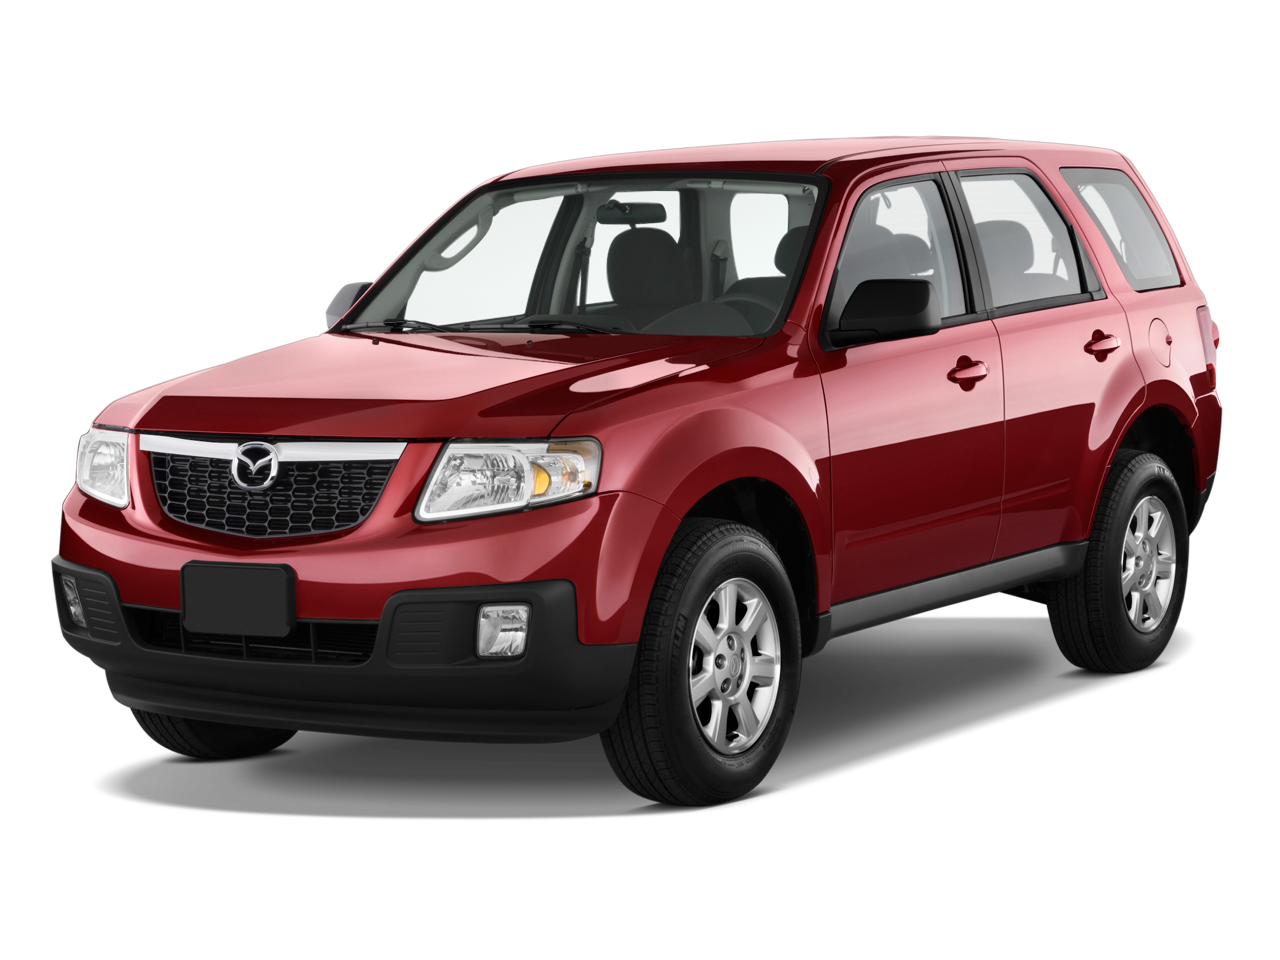 2008 mazda tribute hybrid latest news auto show. Black Bedroom Furniture Sets. Home Design Ideas